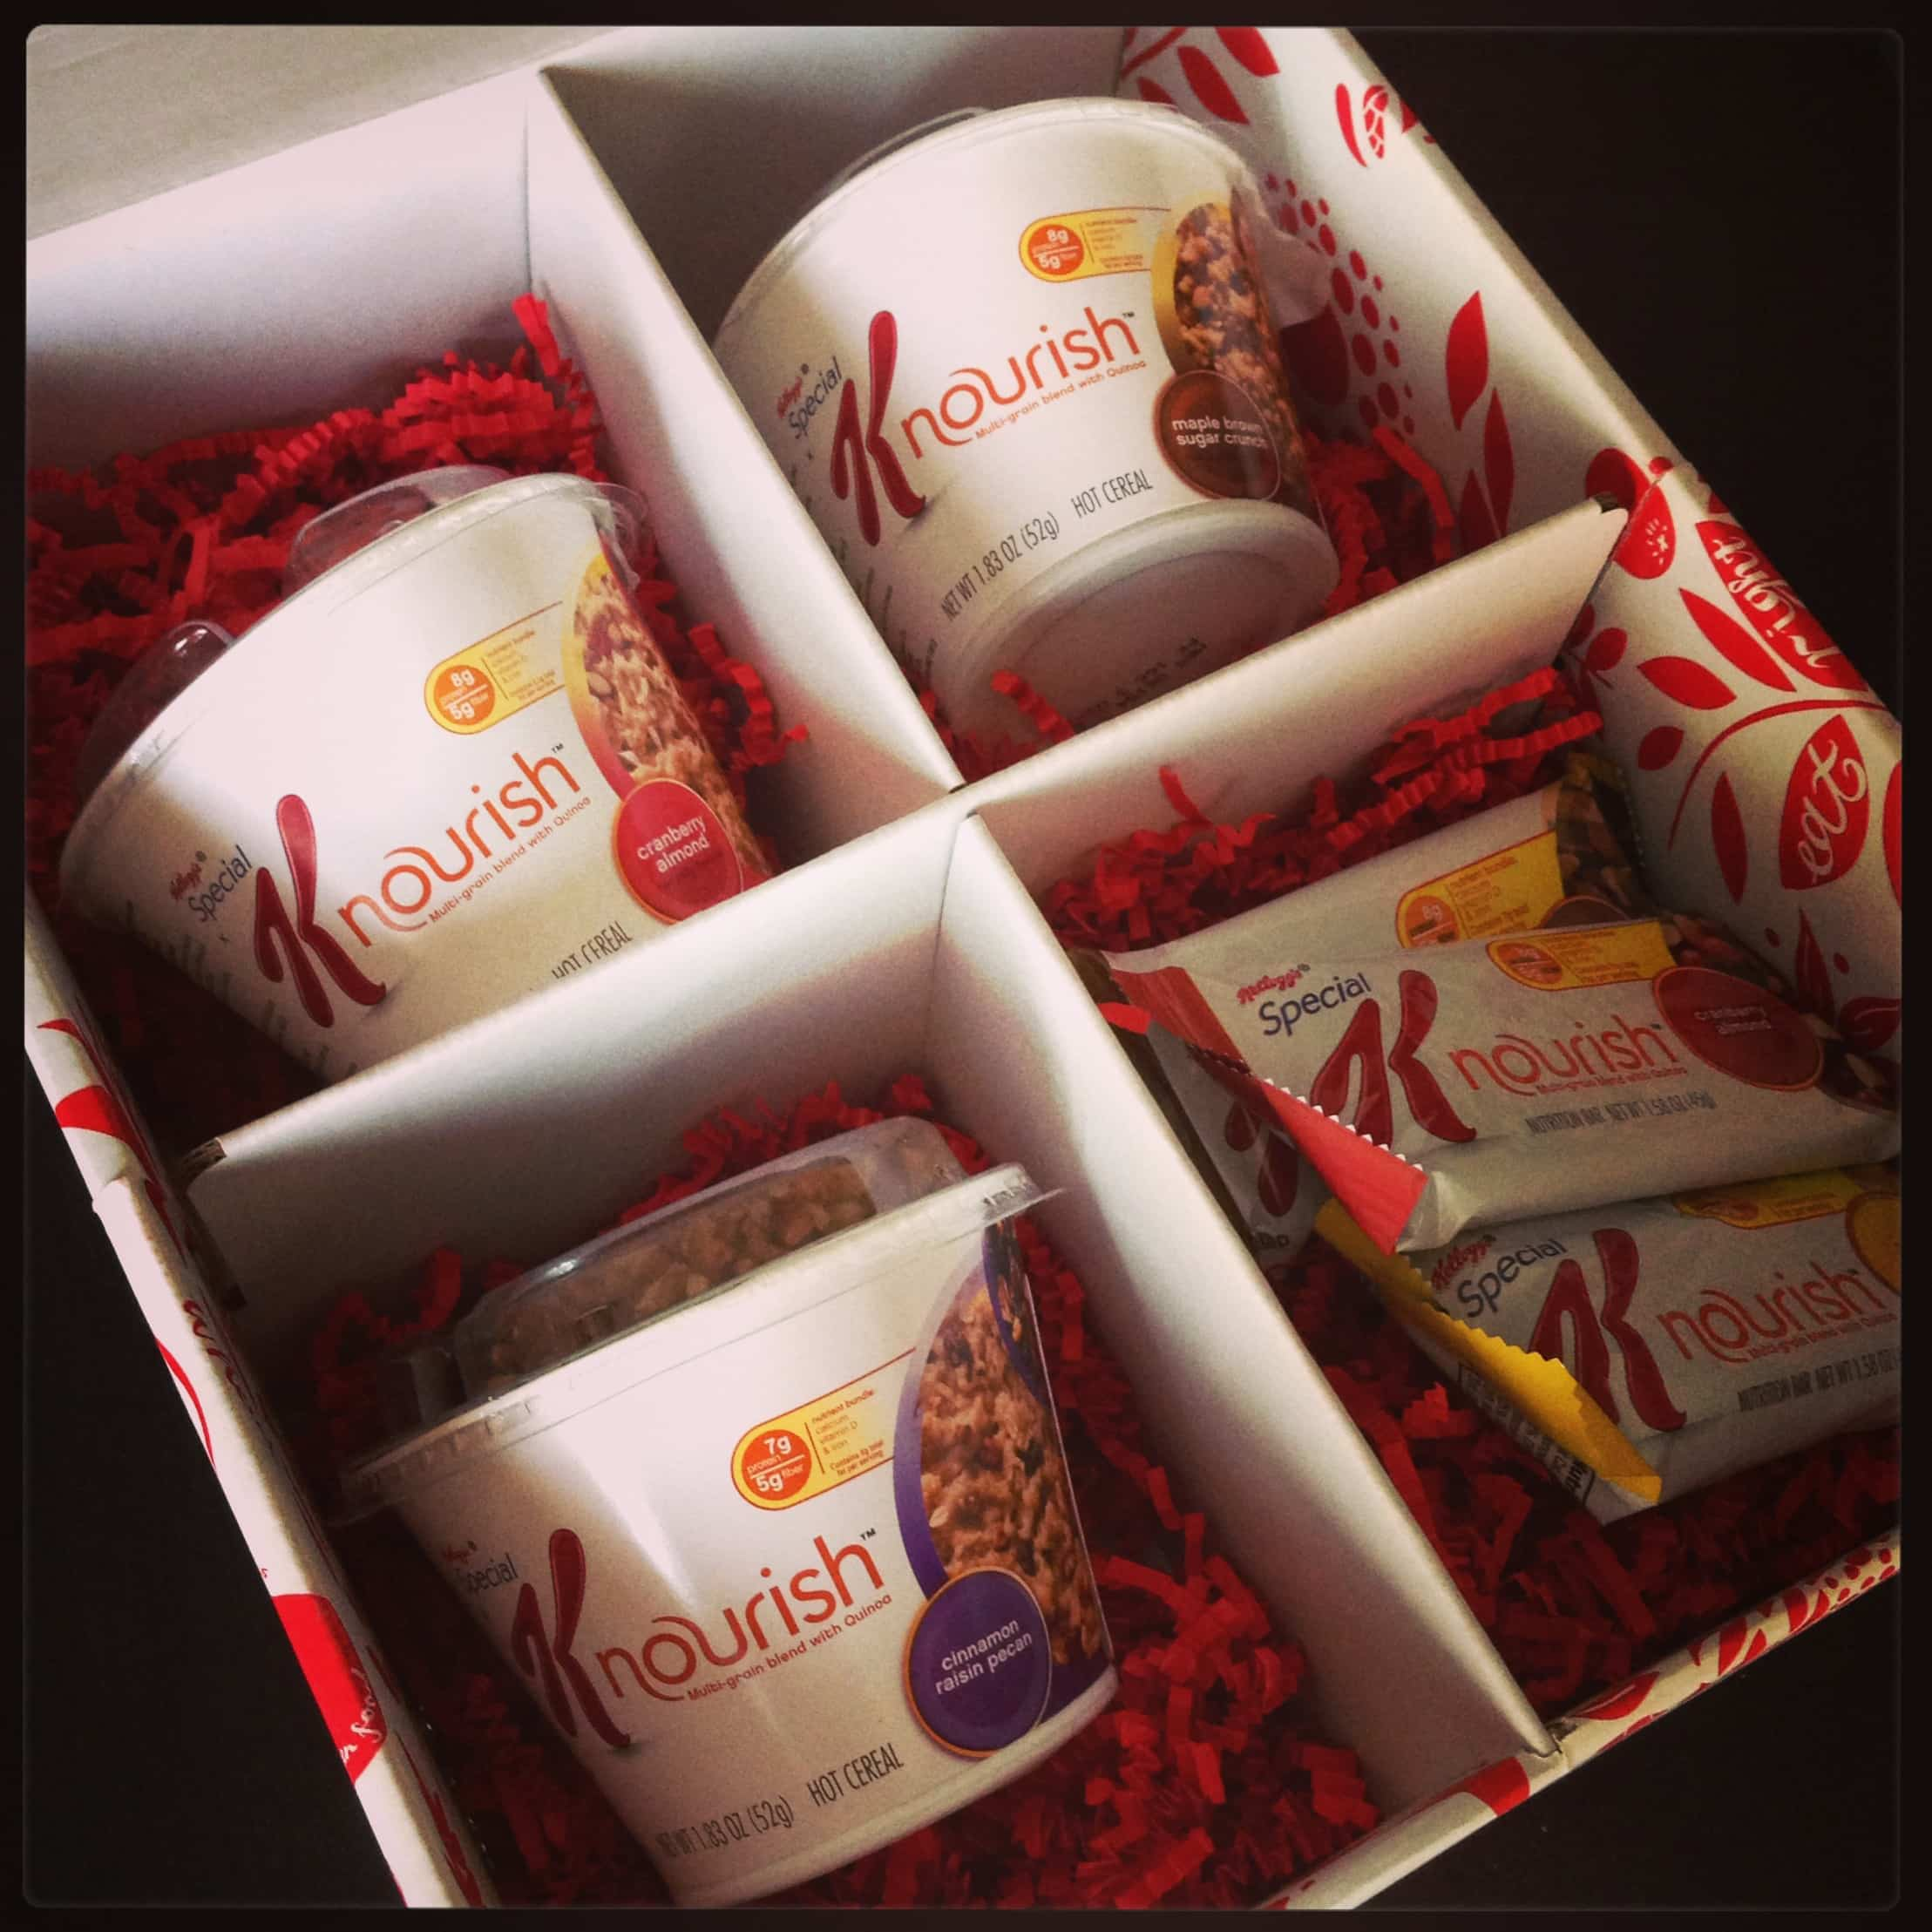 Special K Nourish Hot Cereal and Bars